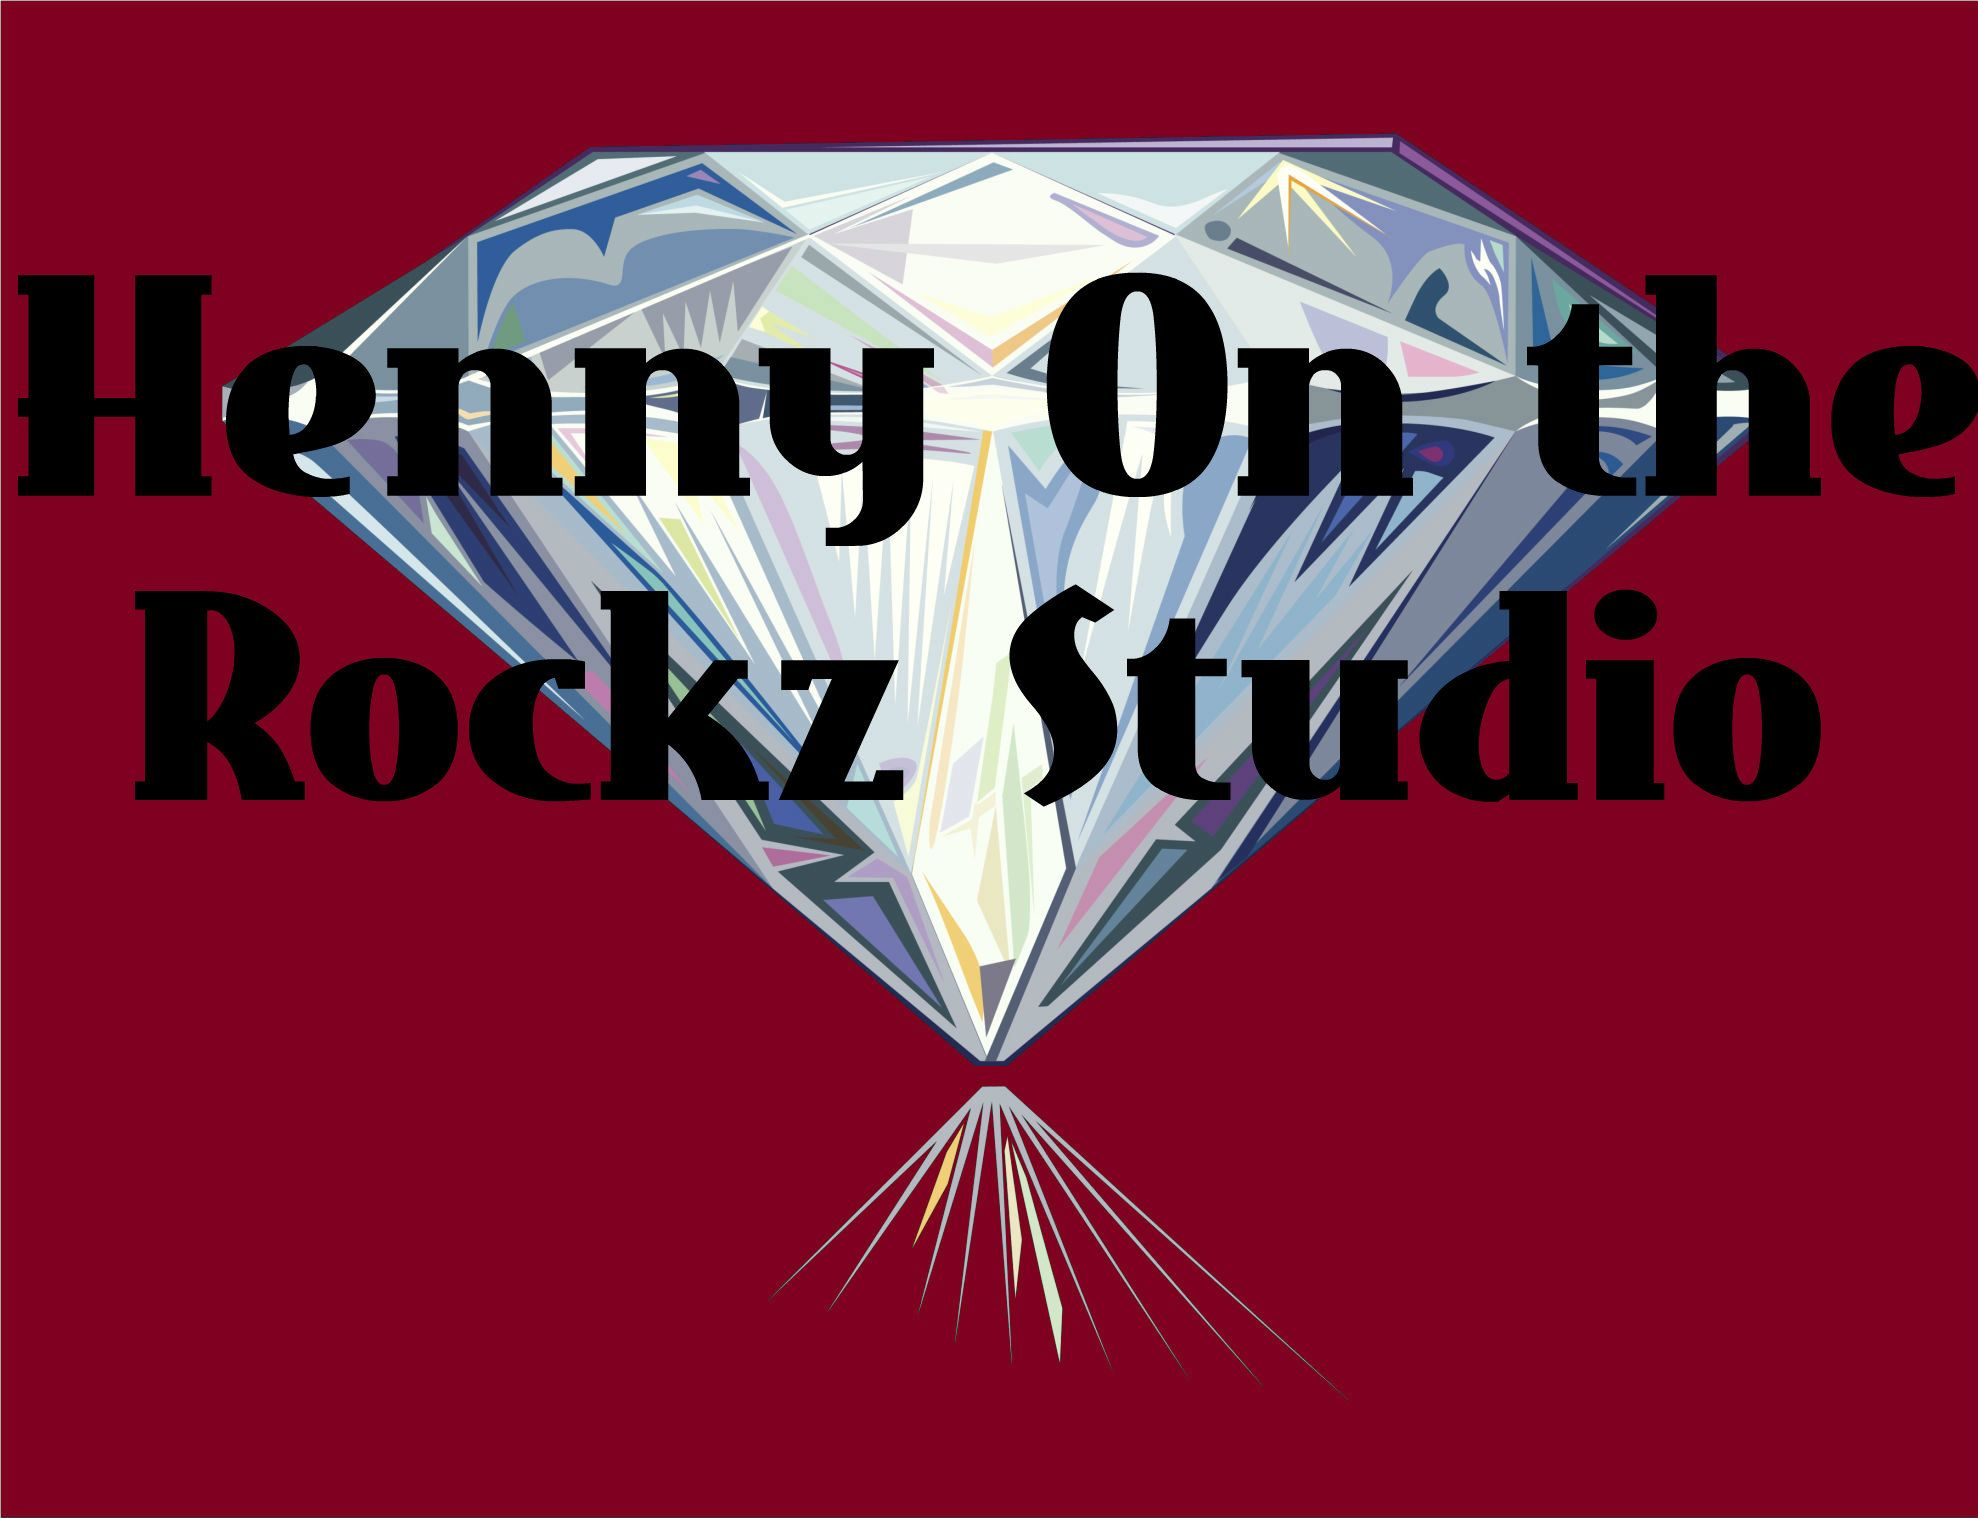 Henny On the Rockz Studio's musician performance studio have what it takes to provide outstanding services to everybody in Rialto, CA. Call us at (909) 301-1374.